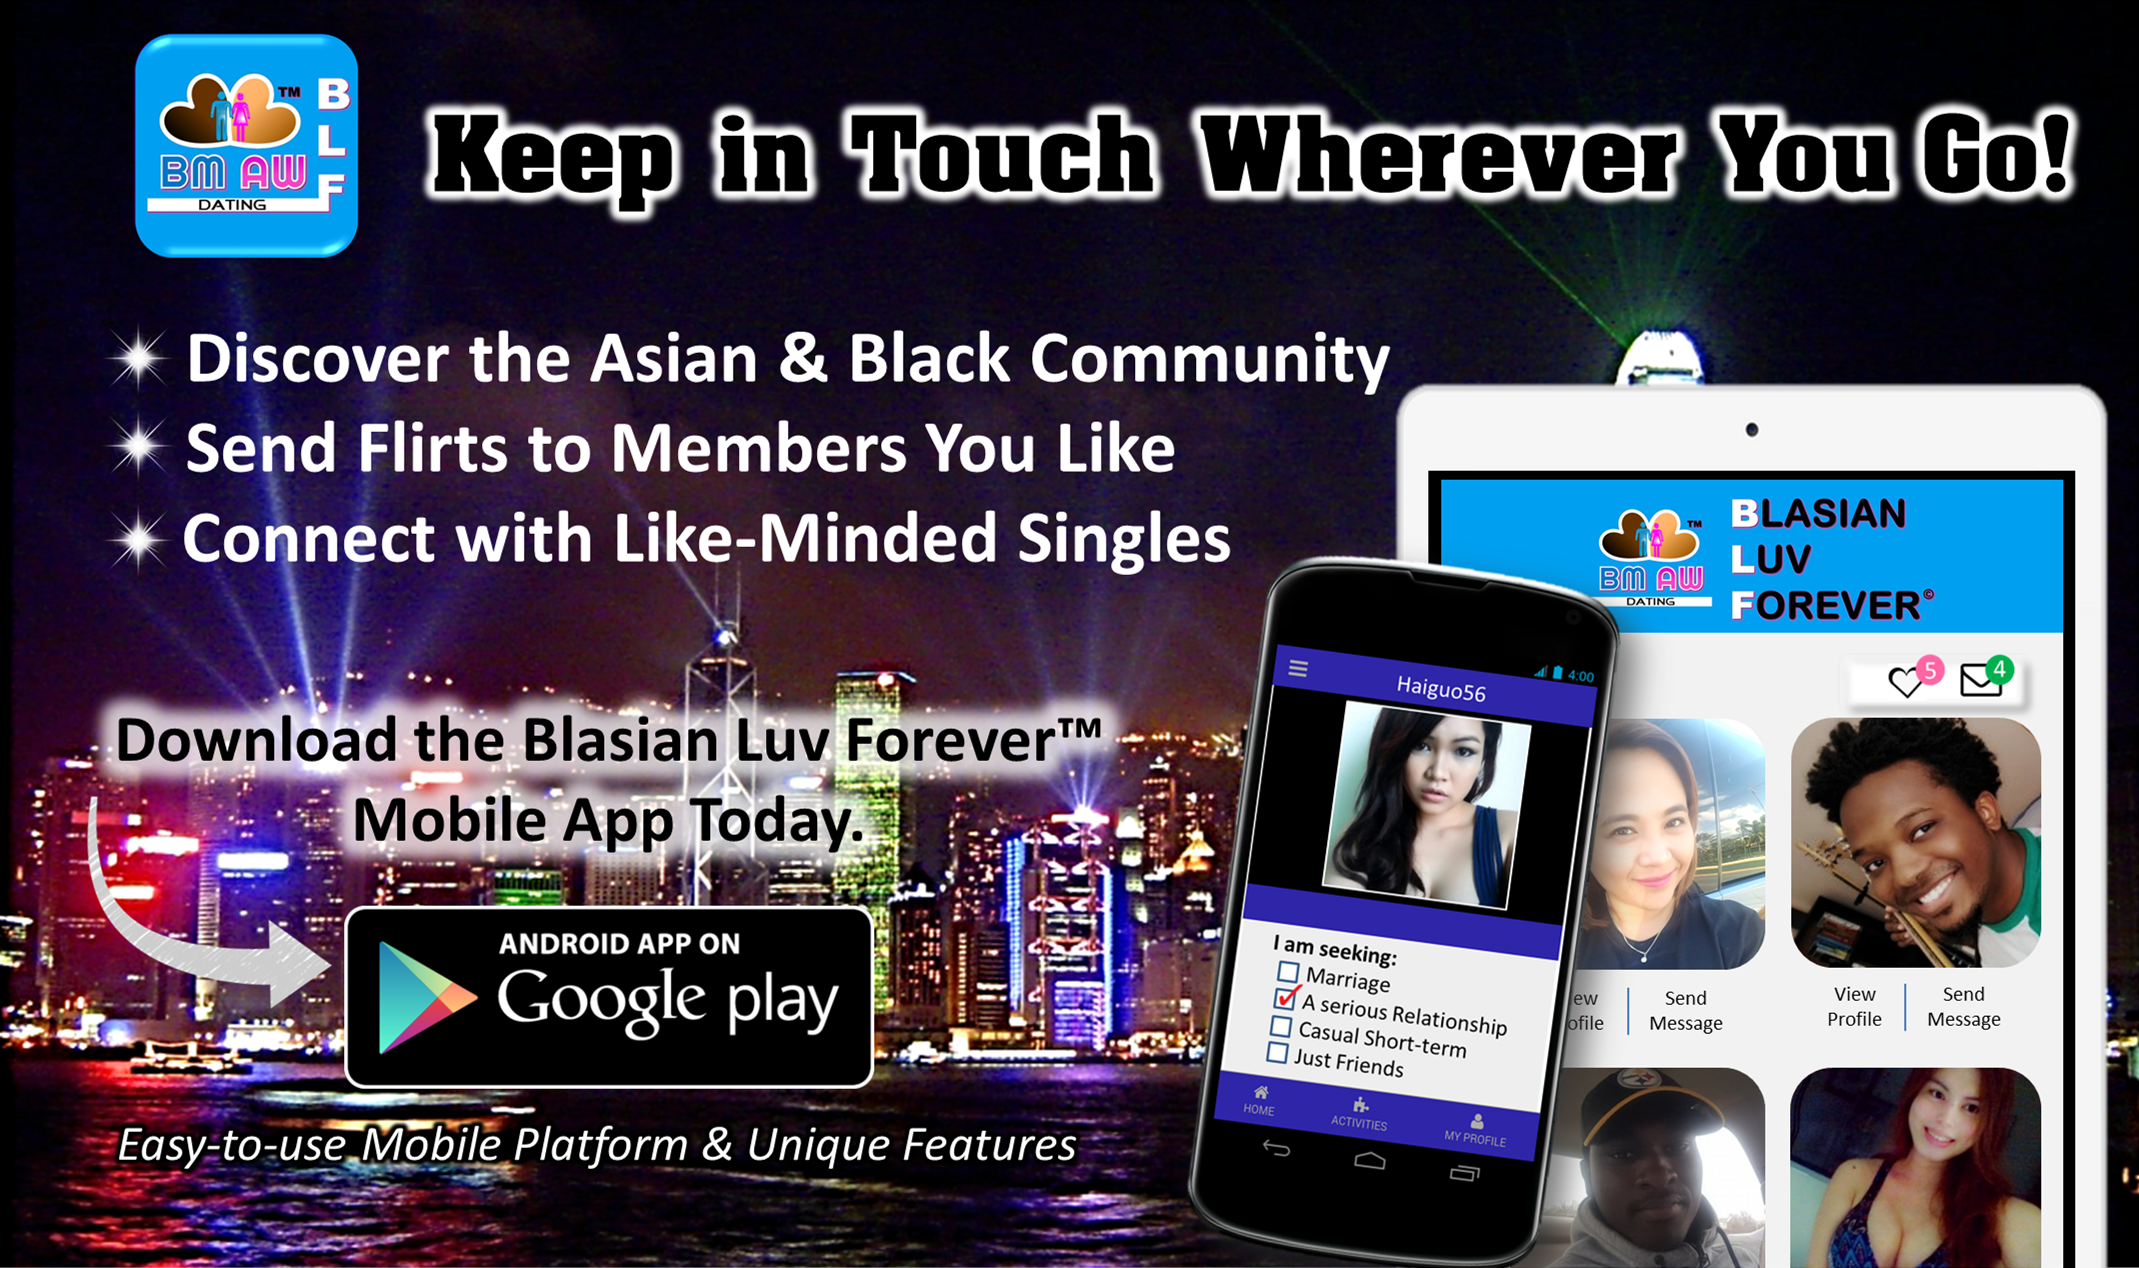 BMAW Dating App, Black and Asian Dating App, AWBM Dating App, Blasian Dating App, Asian Women Black Men Dating App, Black Men Asian Women Dating App, Asian and Black Dating App